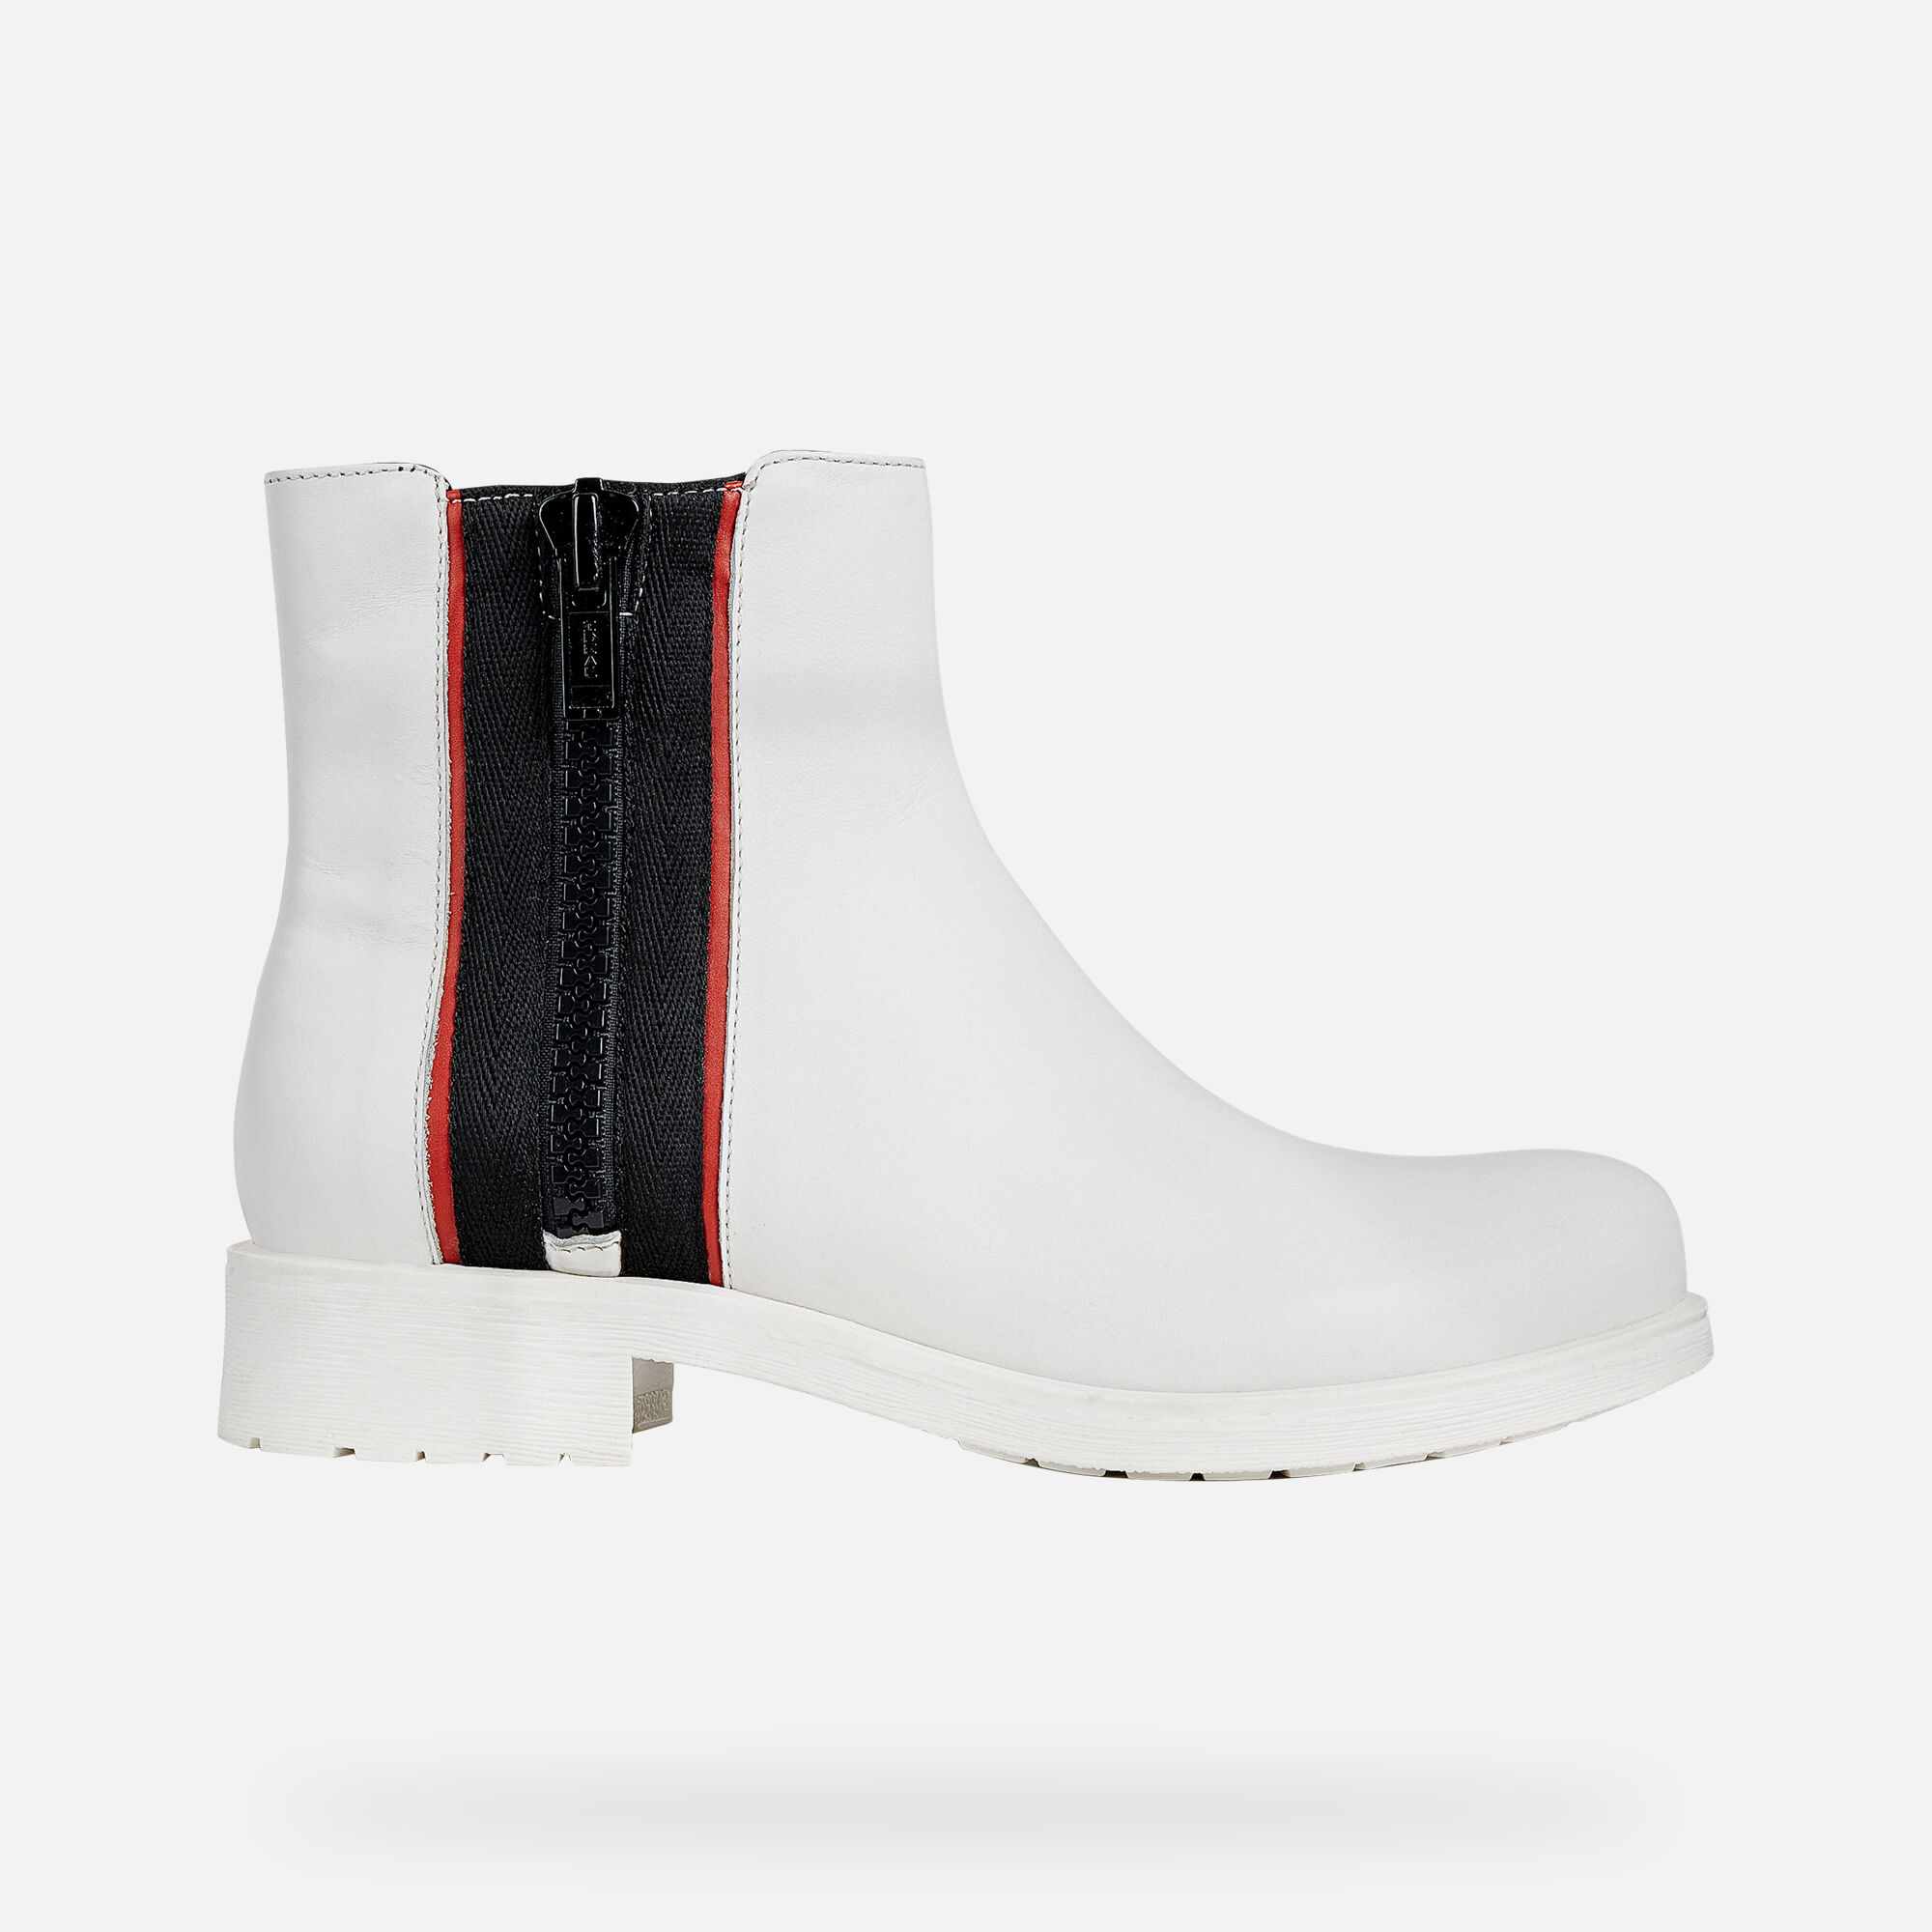 Geox DONNA NEW VIRNA: White and Red Woman Ankle Boots | Geox